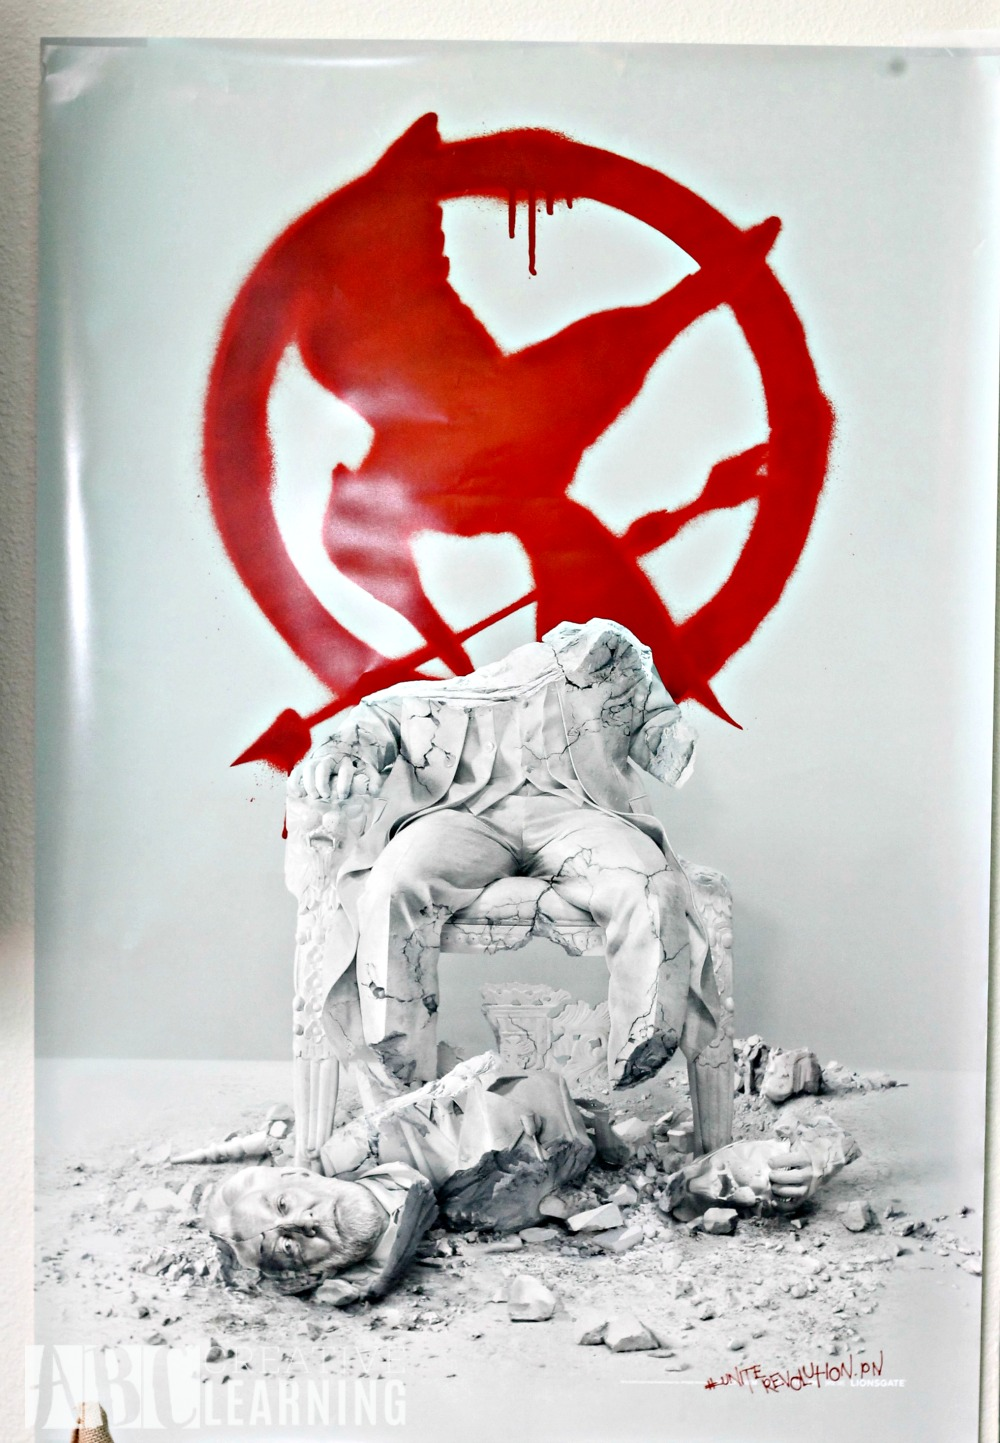 Hunger Games Mockingjay Part 2 Movie Party Poster